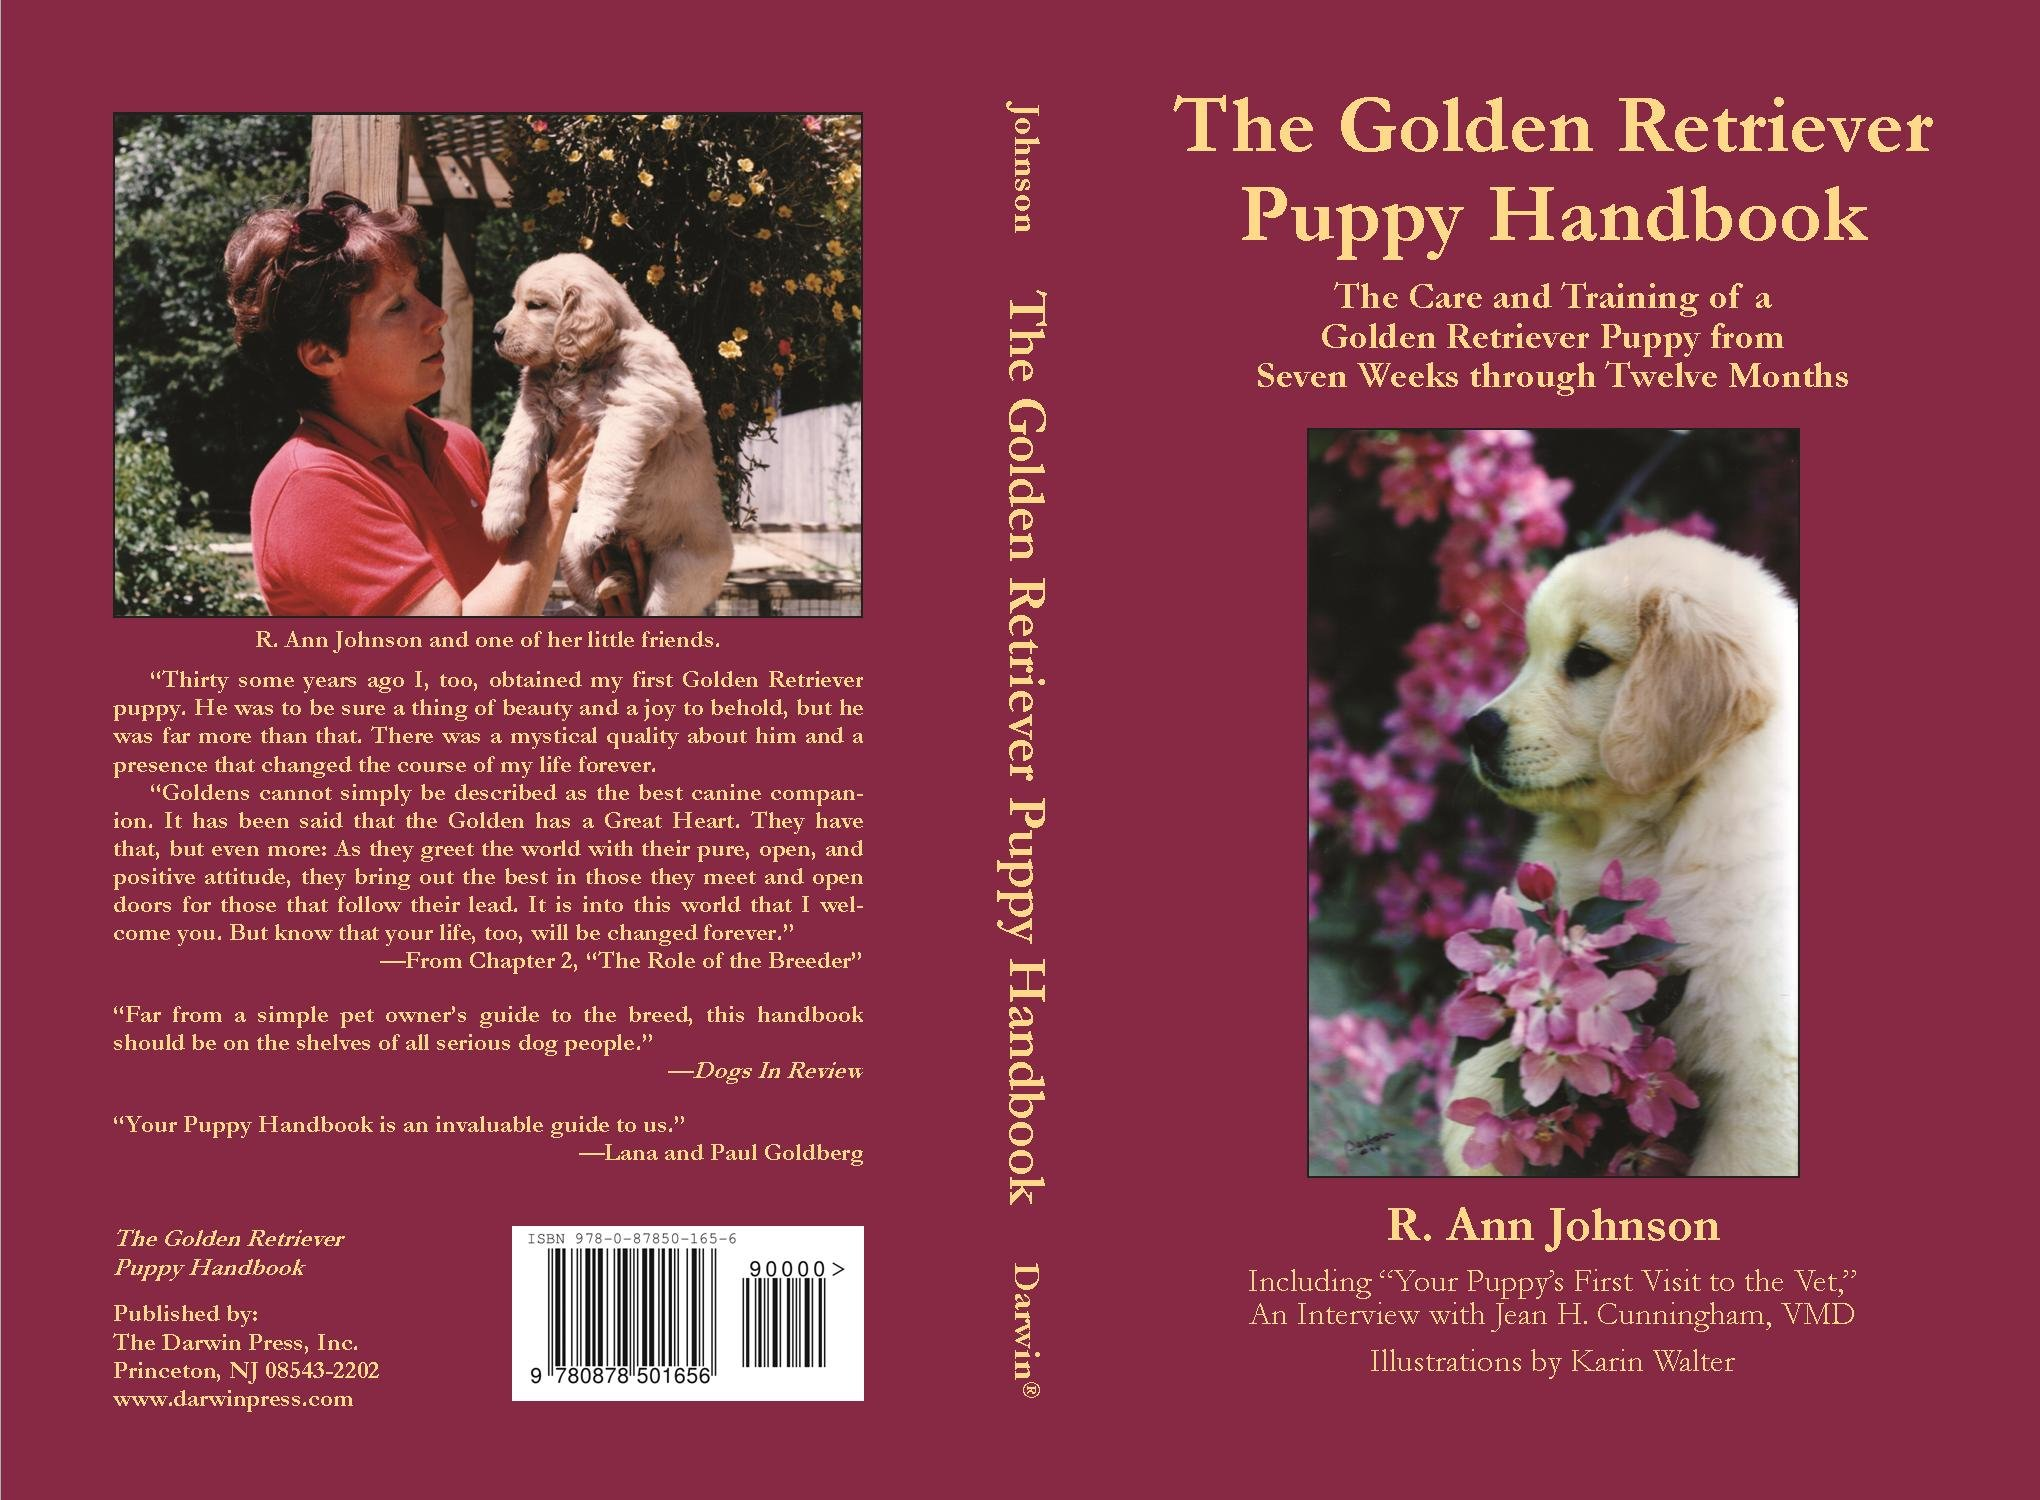 The Golden Retriever Puppy Handbook